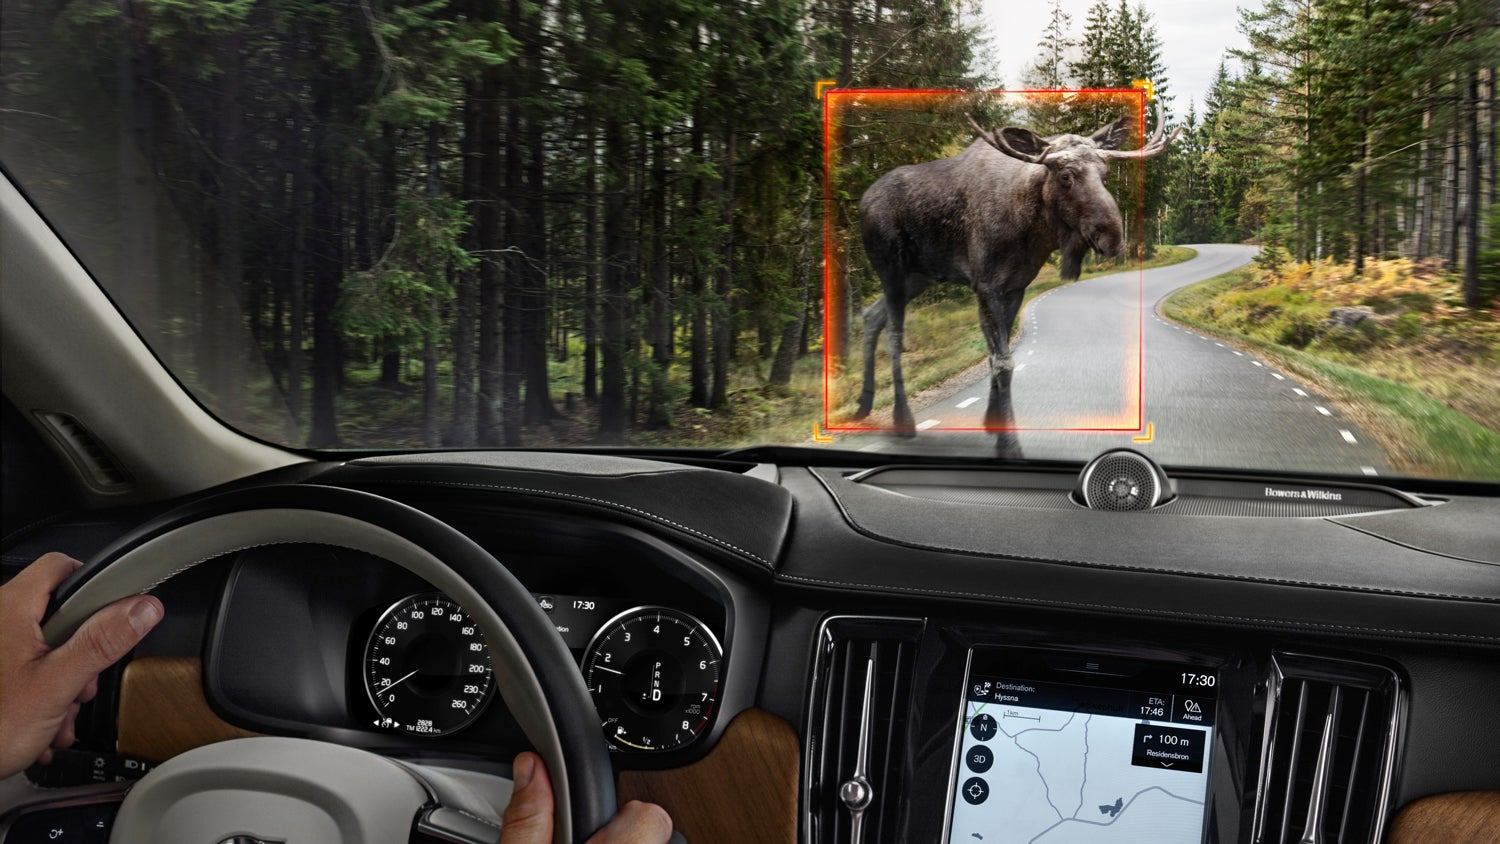 Volvo Is Adding 'Large Animal Detection' to Cars Because It's Easy to Miss a Moose?